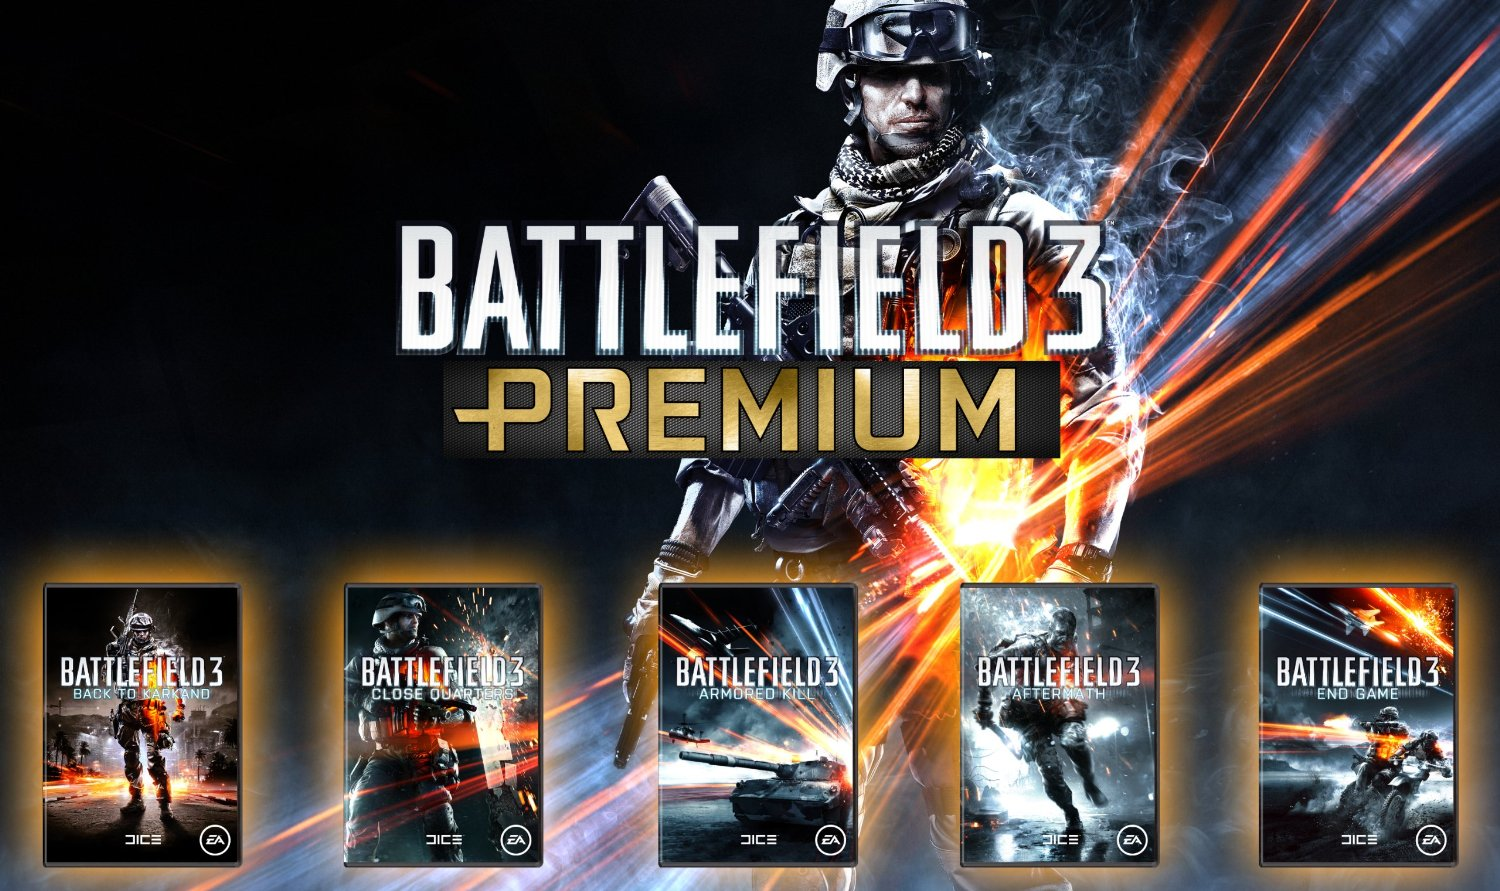 Battlefield 3 Premium (RU/EU) ALL DLC